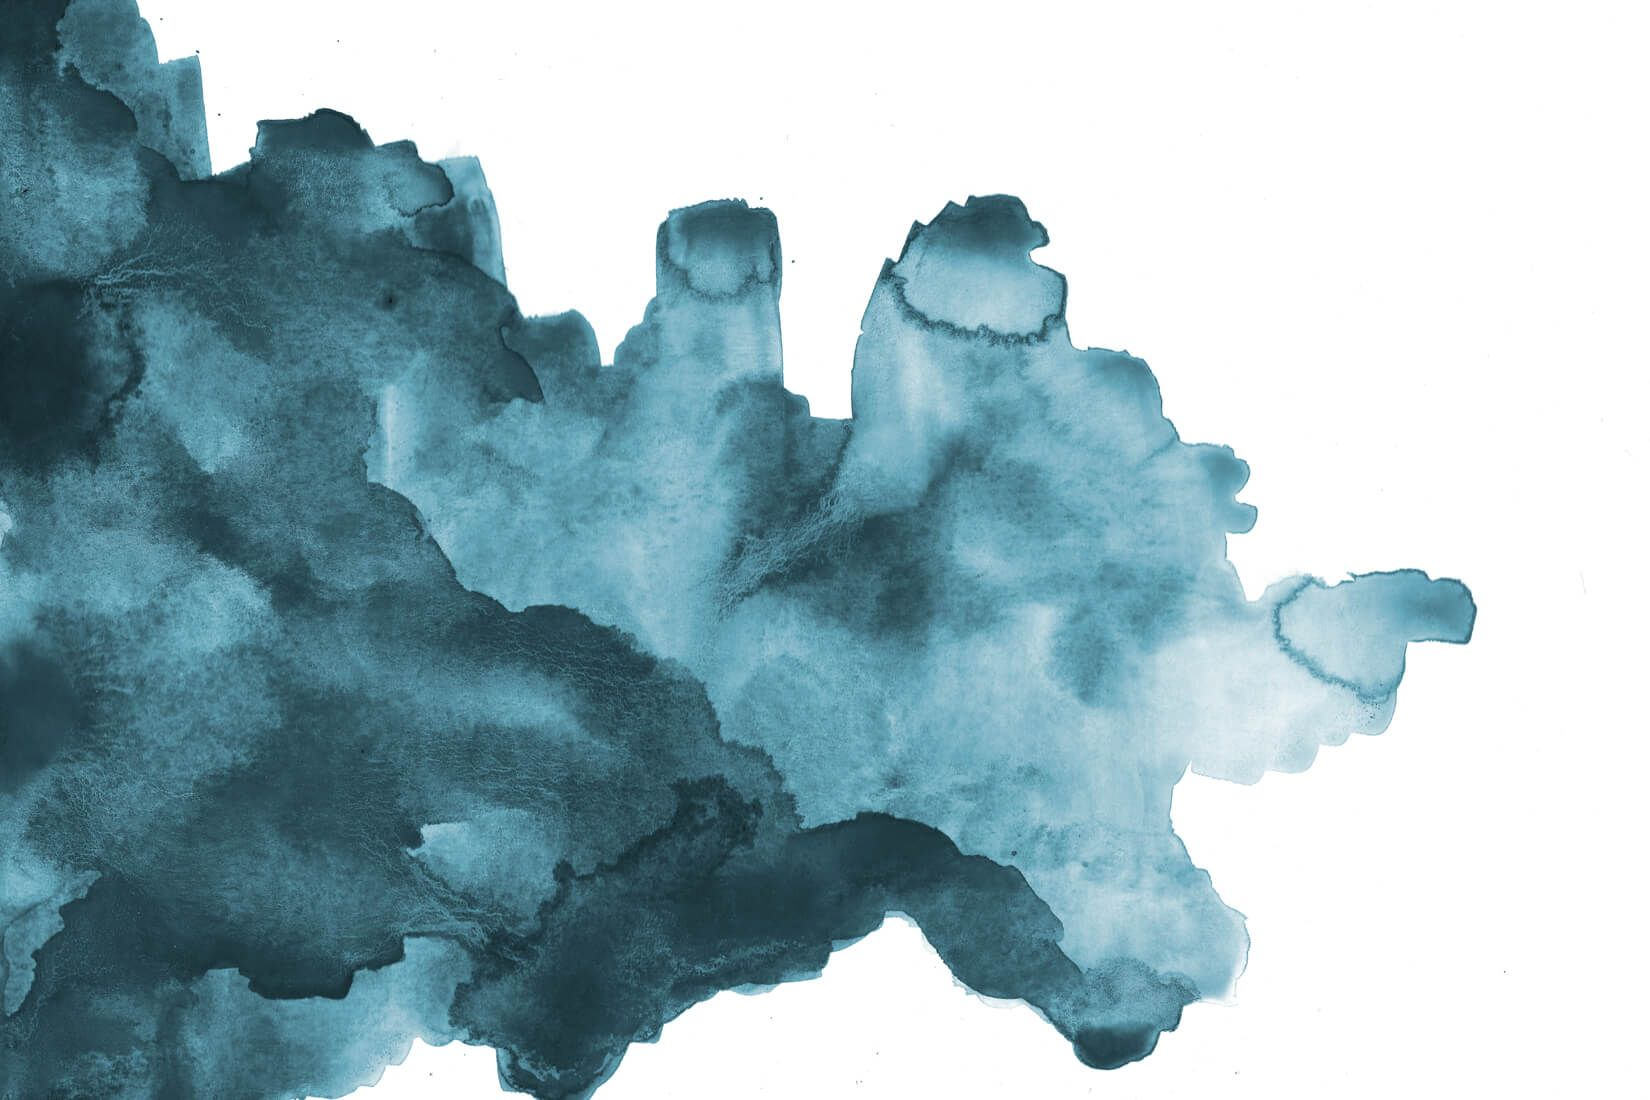 Teal Watercolor Wallpaper Muralswallpaper Watercolor Wallpaper